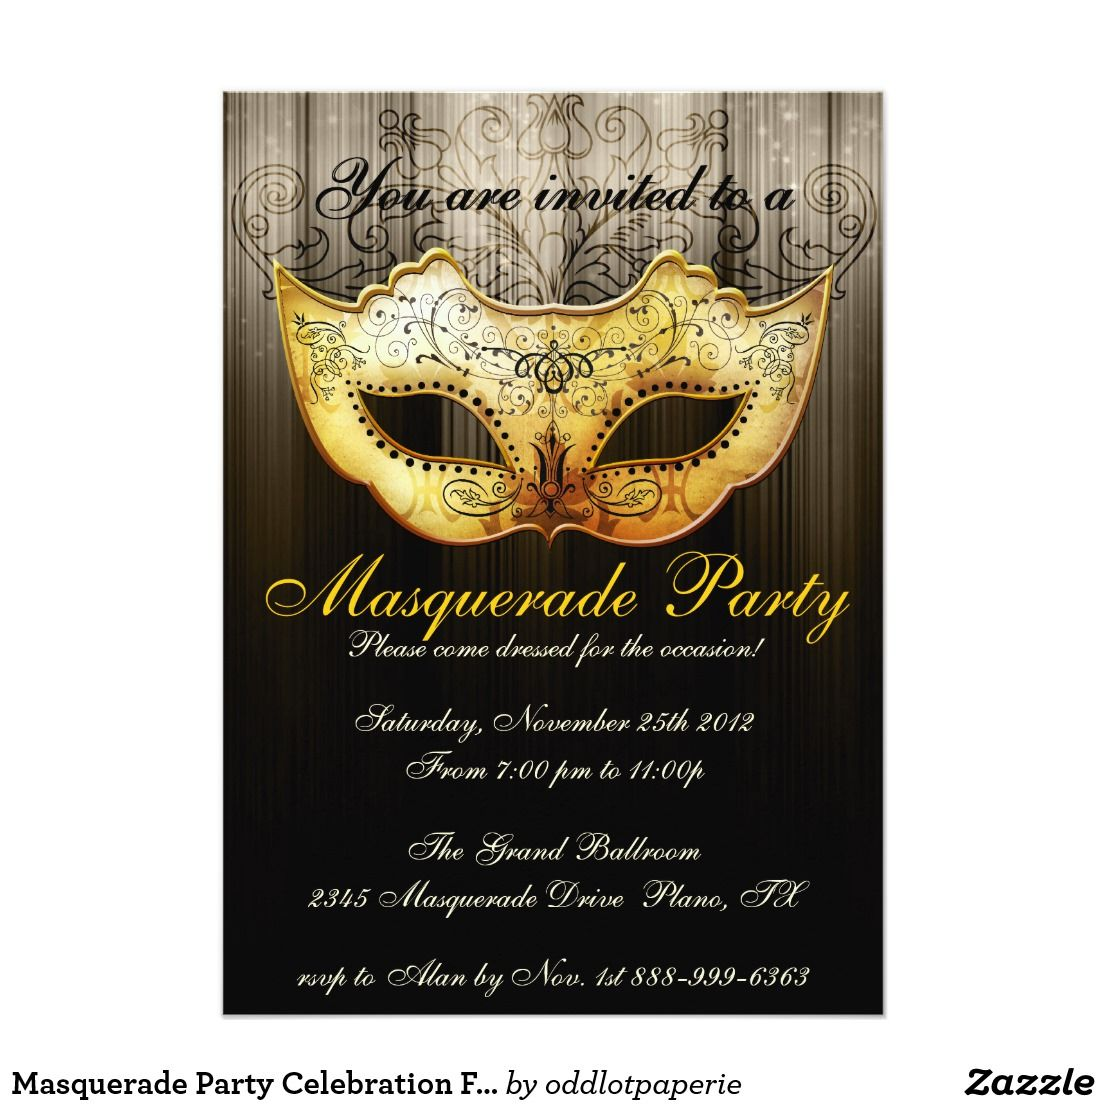 Masquerade Party Celebration Fancy Gold Invitation 2018